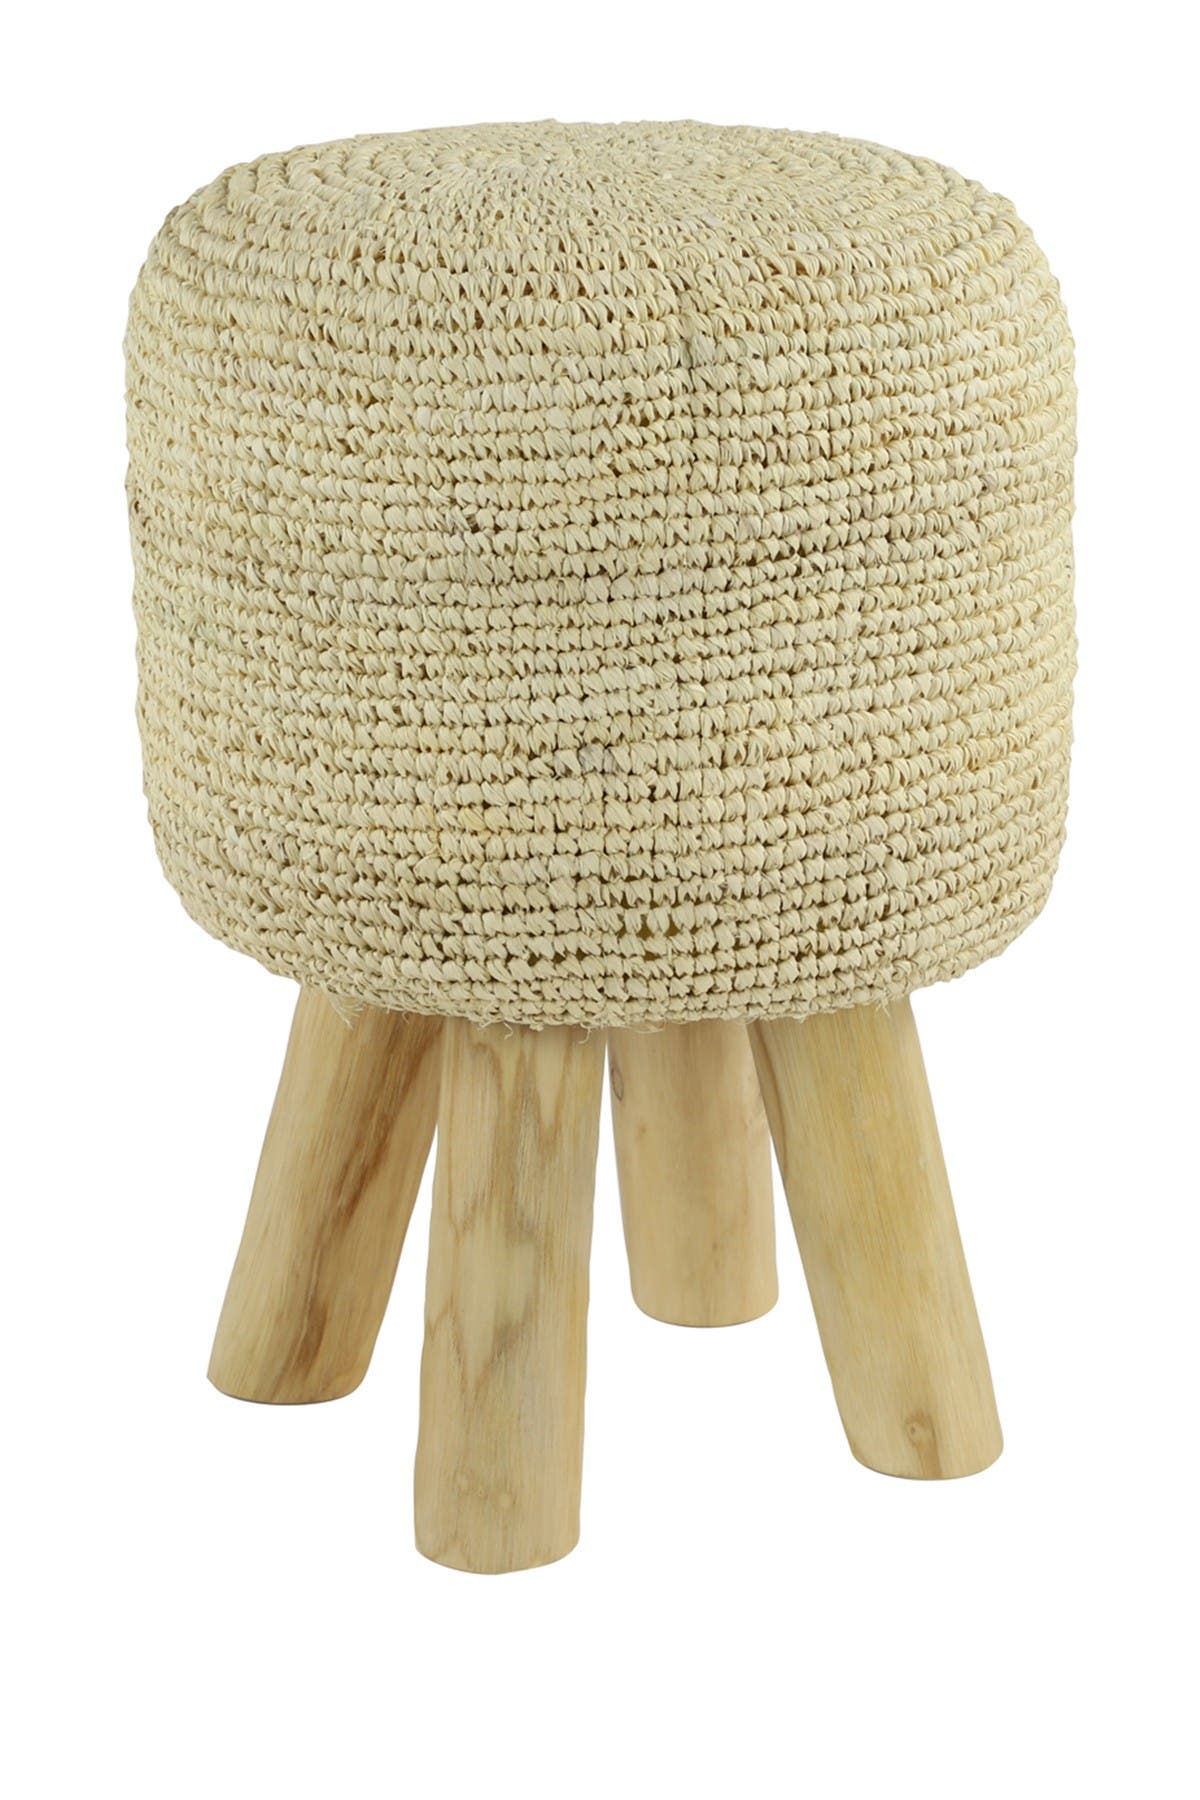 Image of Willow Row Fabric White Stool